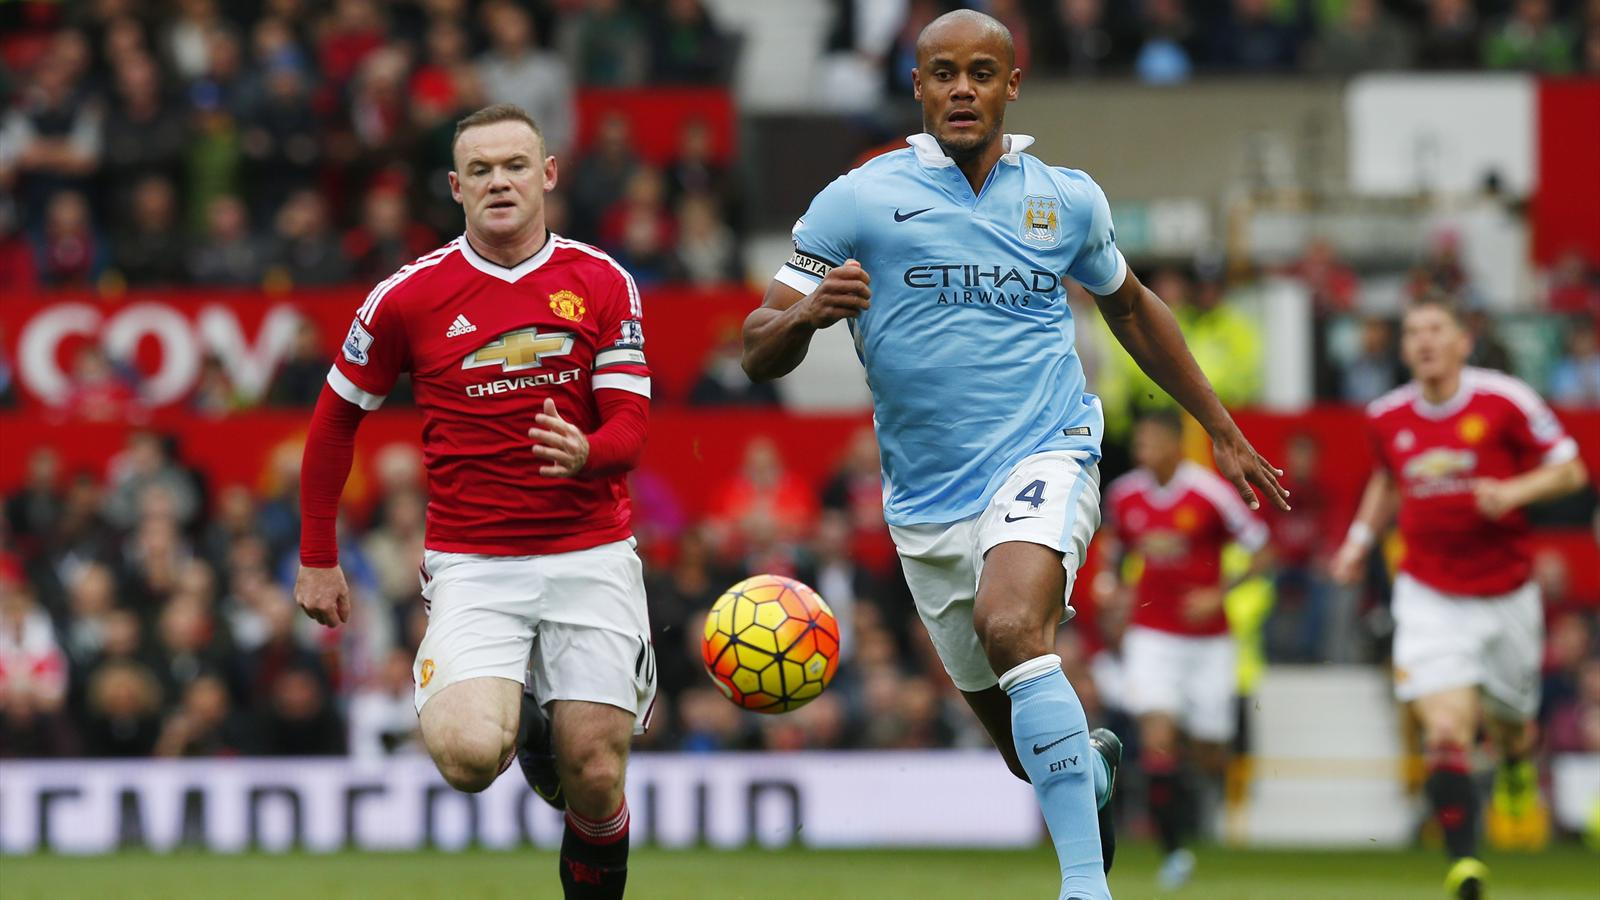 manchester united denied as city hold firm in derby draw